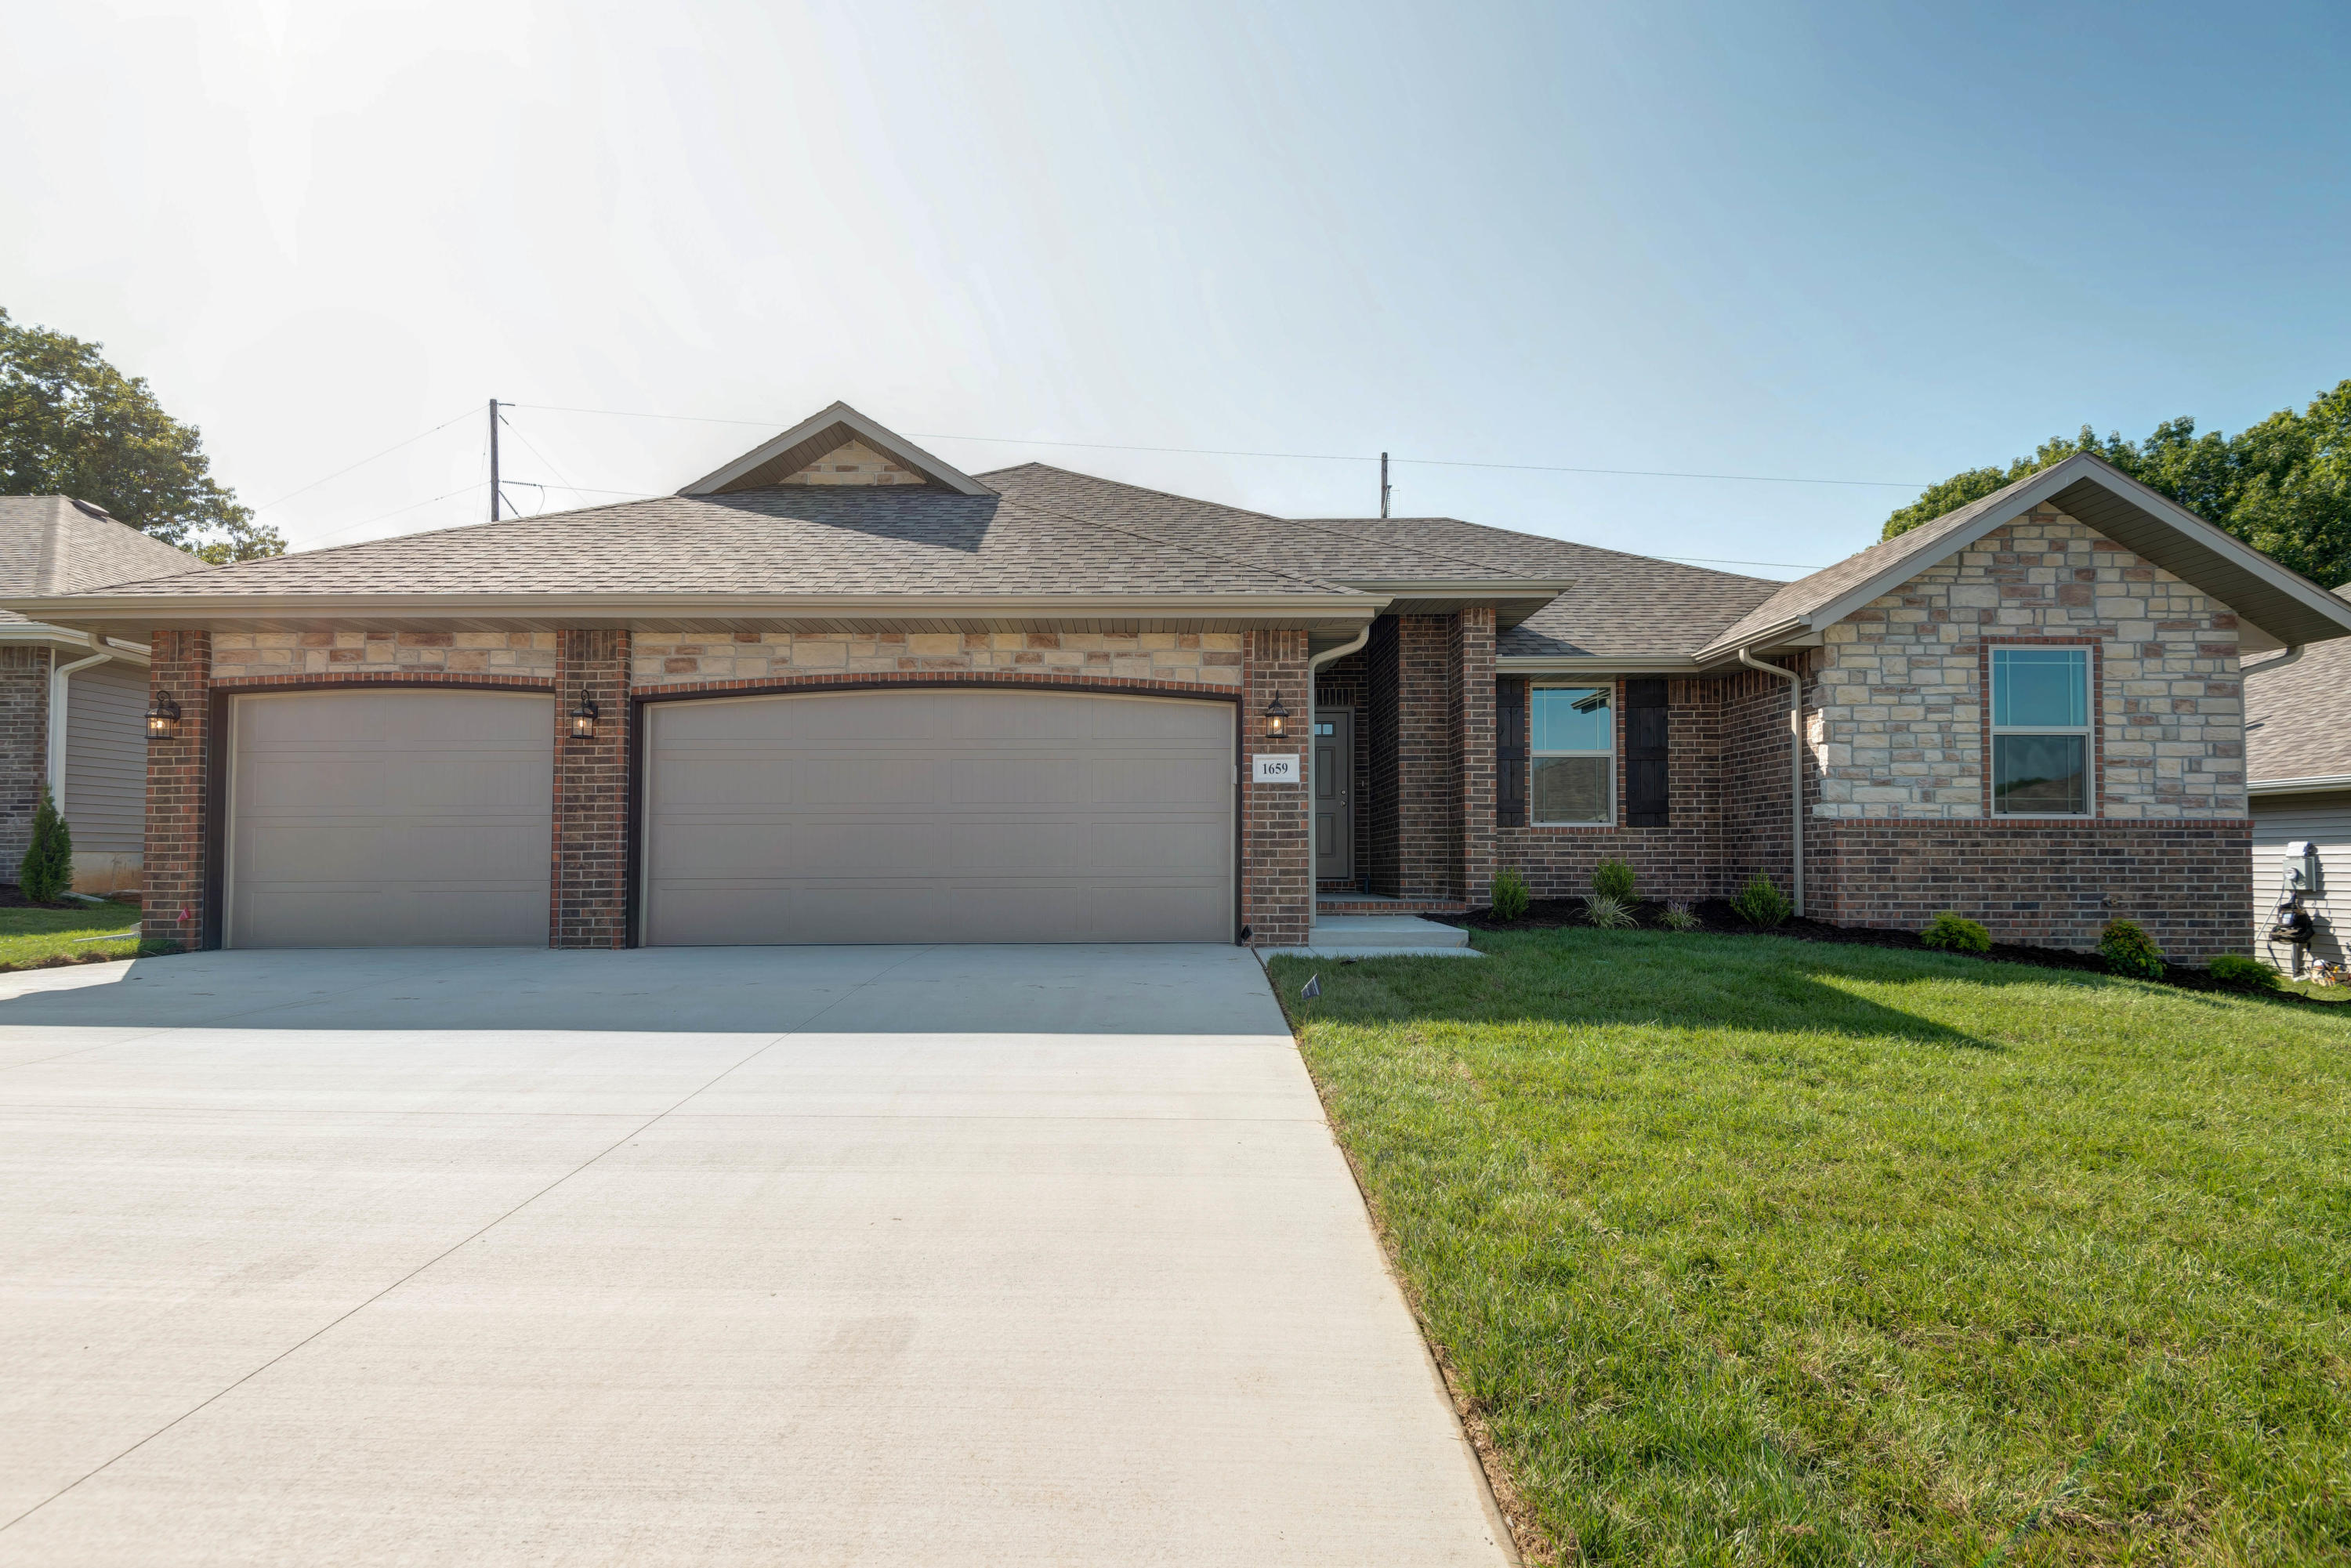 6004 Willow Street Battlefield, MO 65619